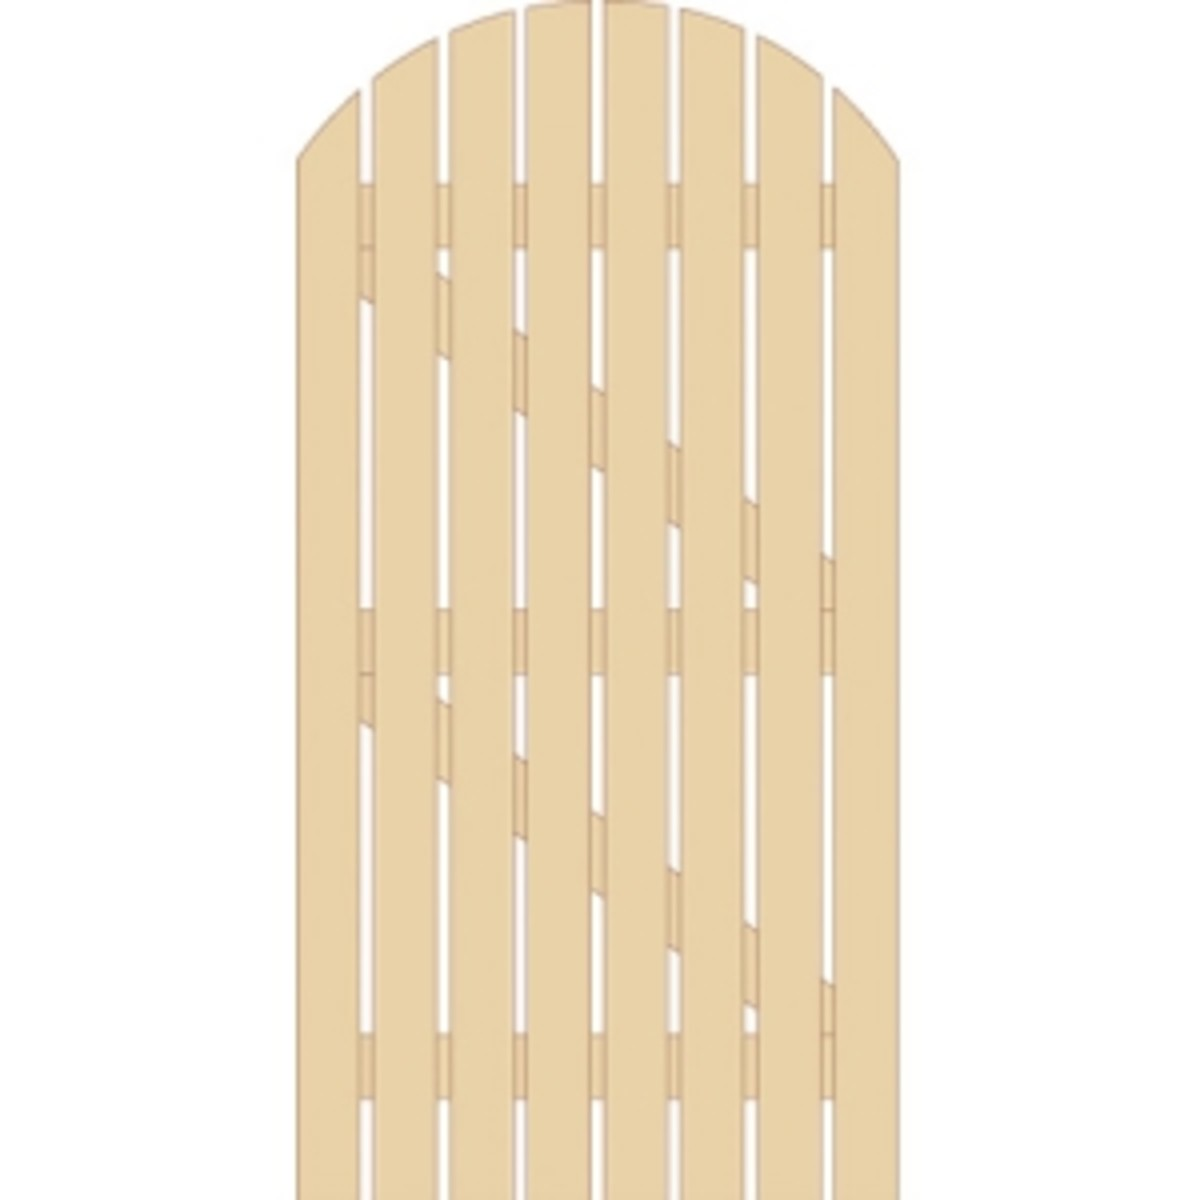 Wooden gates - Tall single side entrance wooden gates - Dorset bow top gate